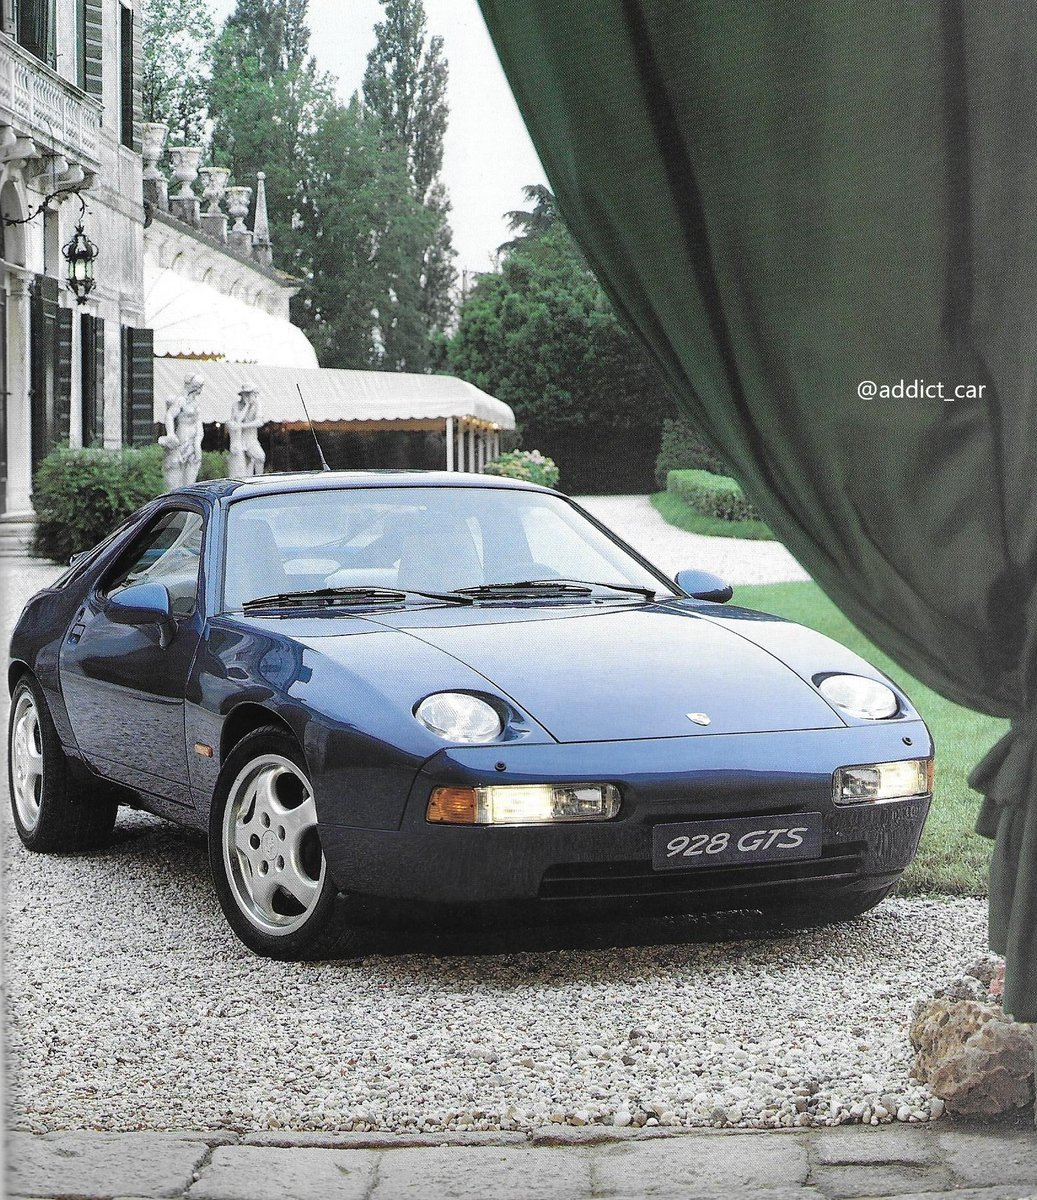 The 1992 GTS was the last evolution of the uniquely-styled Porsche 928, then nearly 15 years old. It looked more muscular, with flared rear wheel arches, new wheels and mirrors. The 5.4 litre engine was more powerful and airbags appeared for the first time. #carbrochure #Porsche